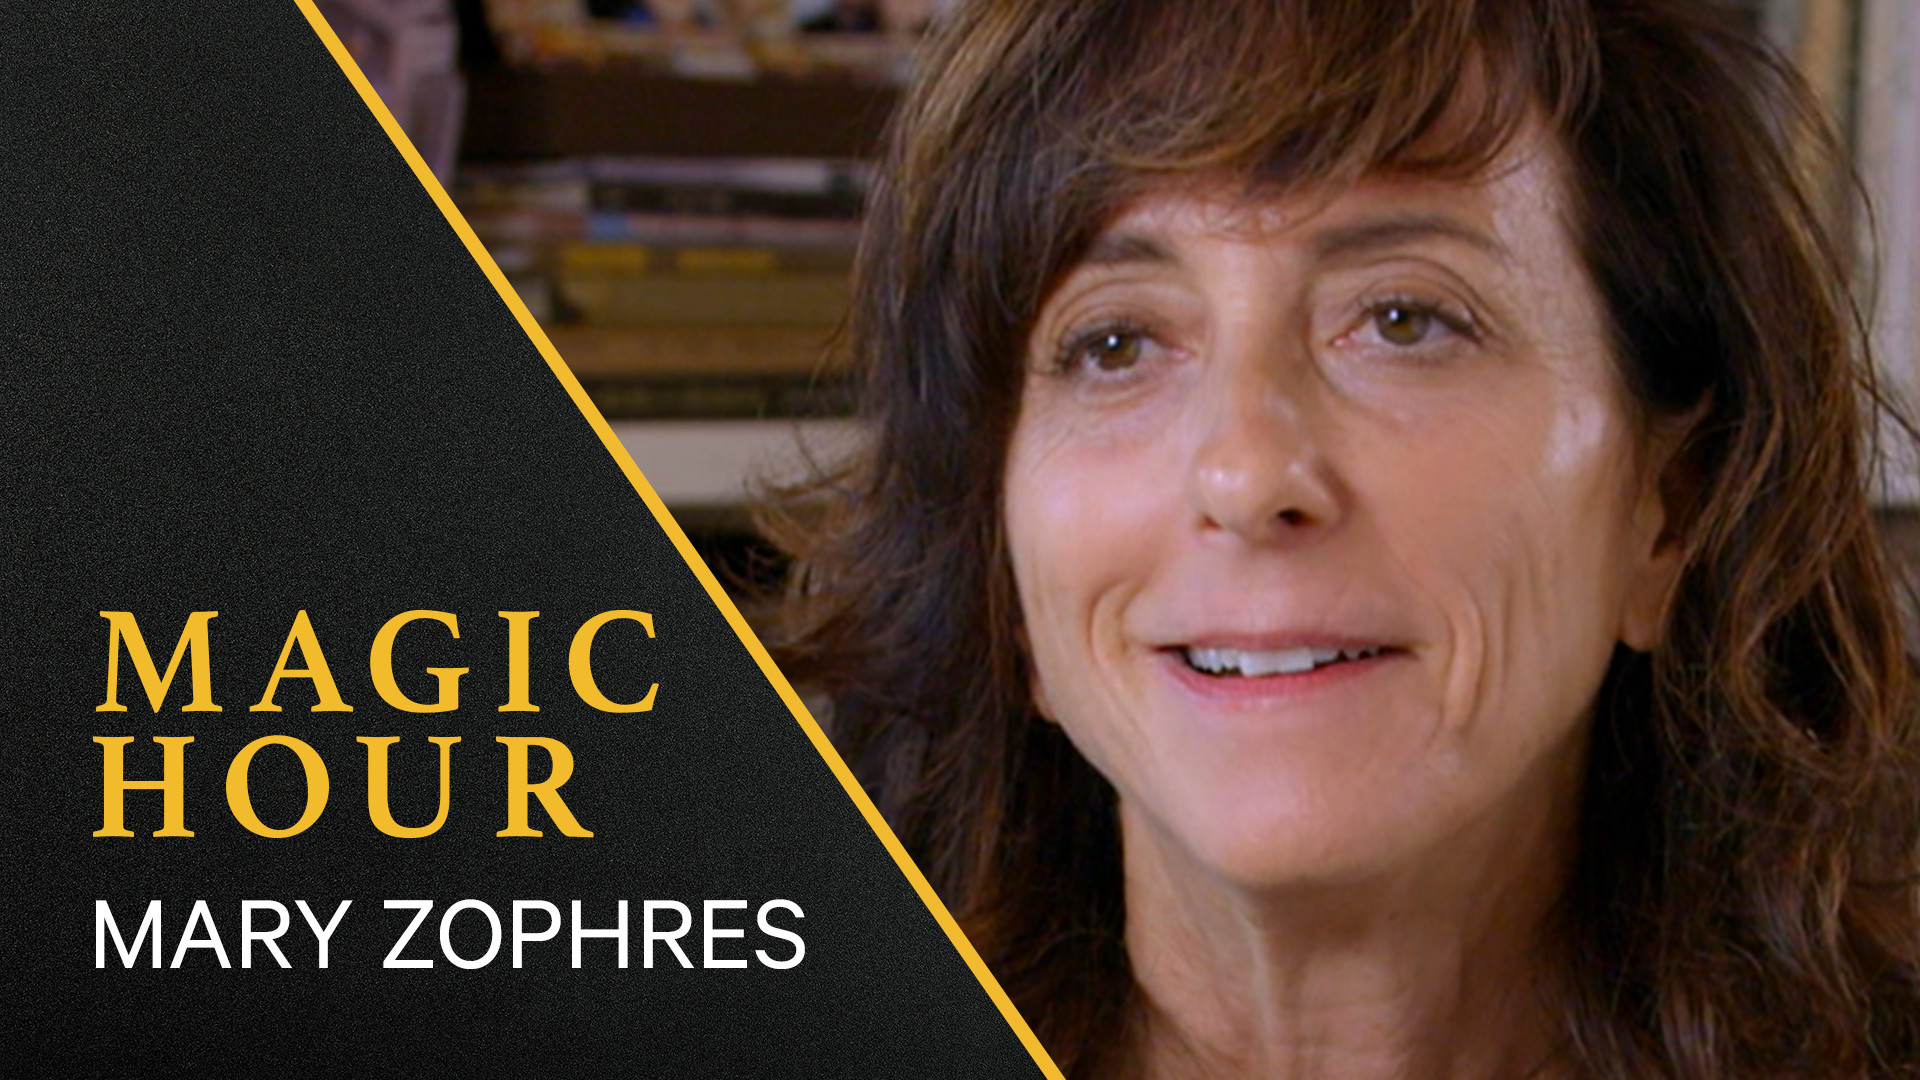 Costume Designer Mary Zophres on Creating Characters Through Clothing | Magic Hour